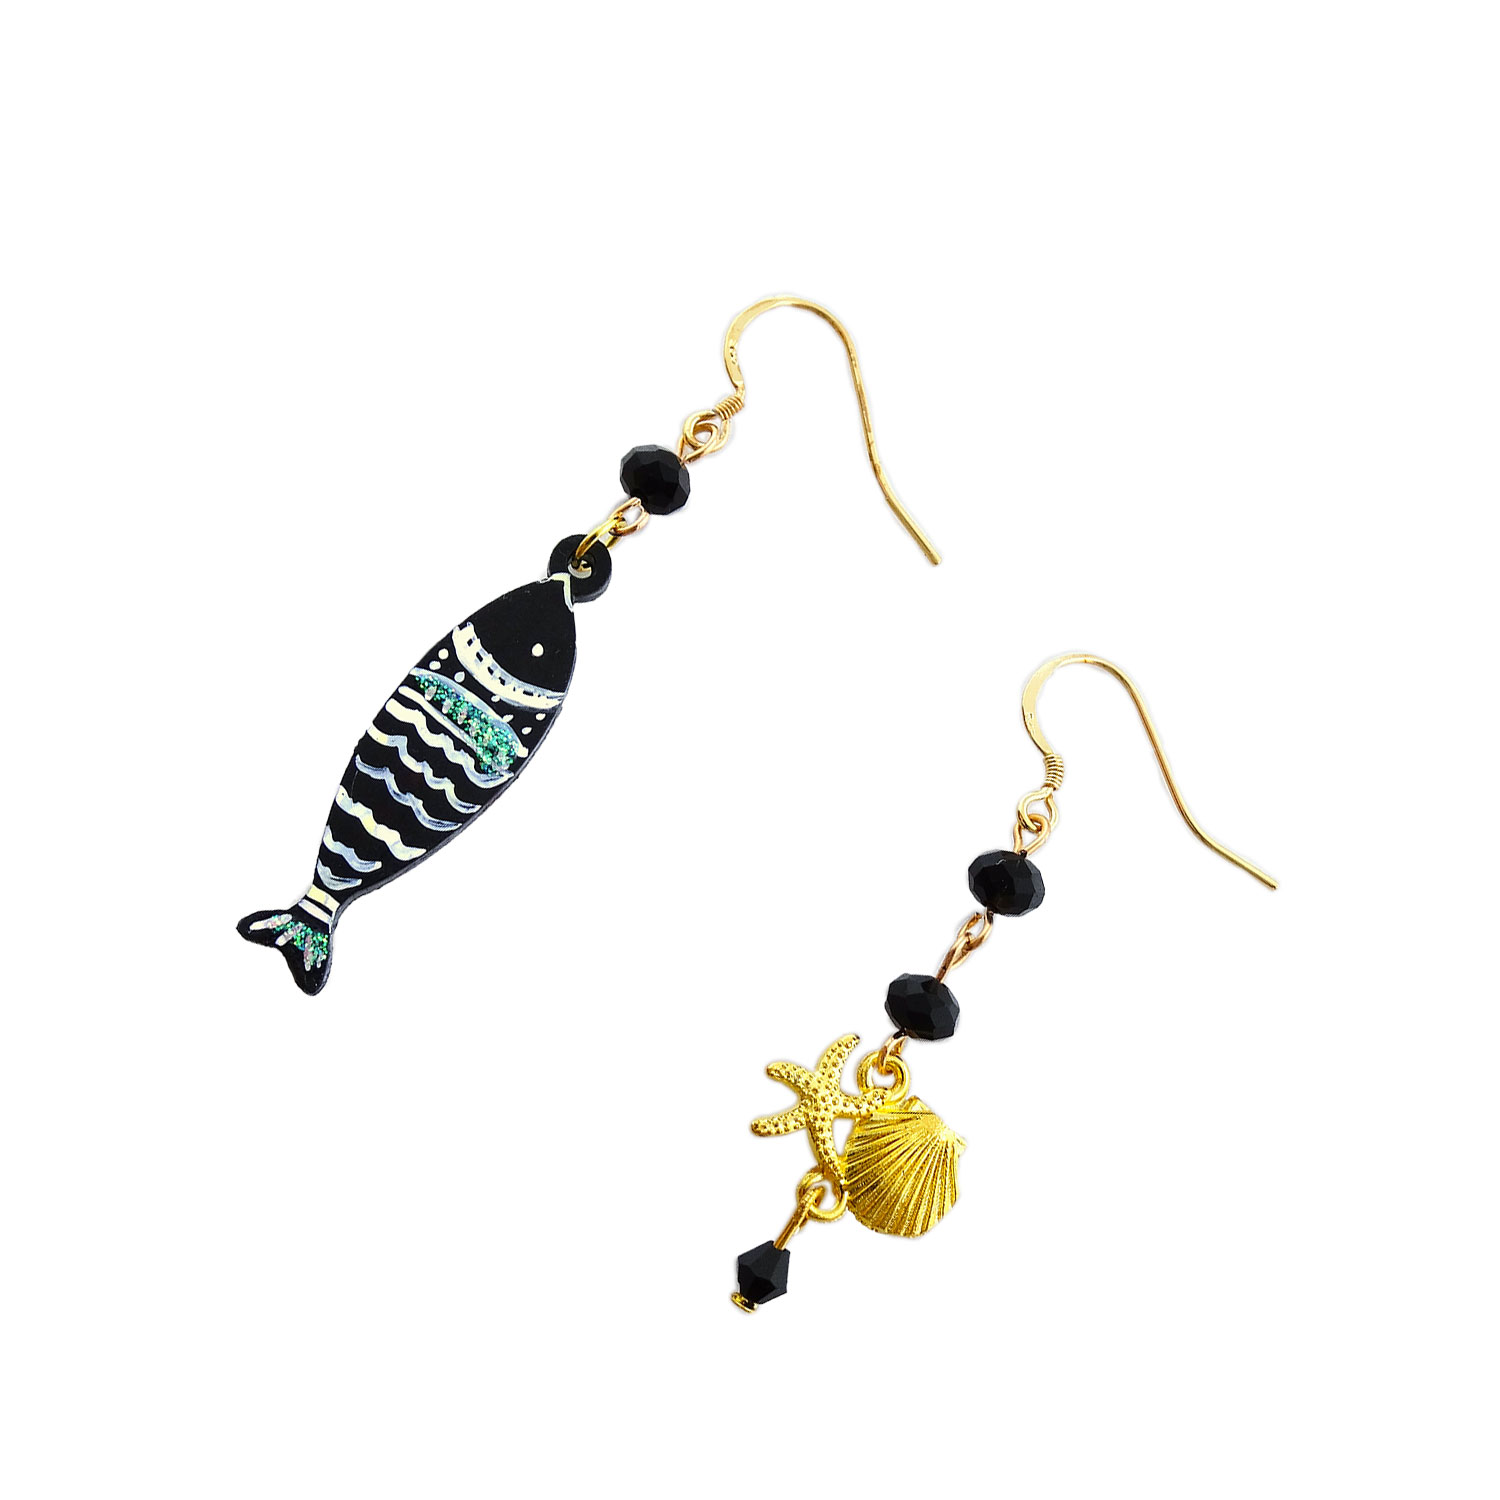 Hand-painted earrings - Black and white fish